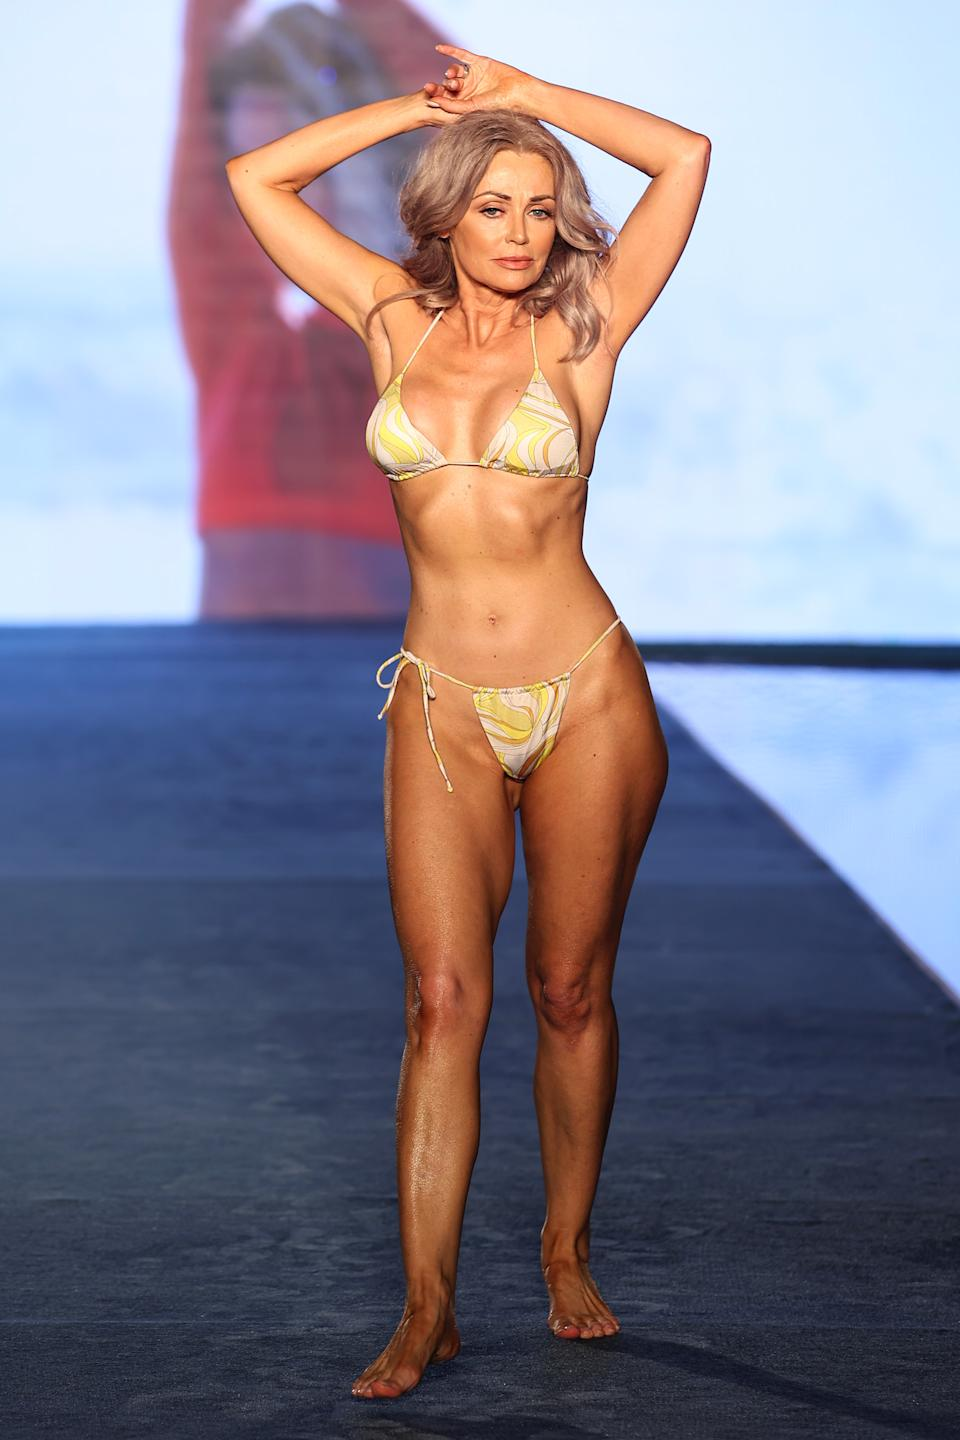 Kathy Jacobs, la top model 57enne domina le sfilate in bikini (Photo by John Parra/Getty Images for Sports Illustrated)